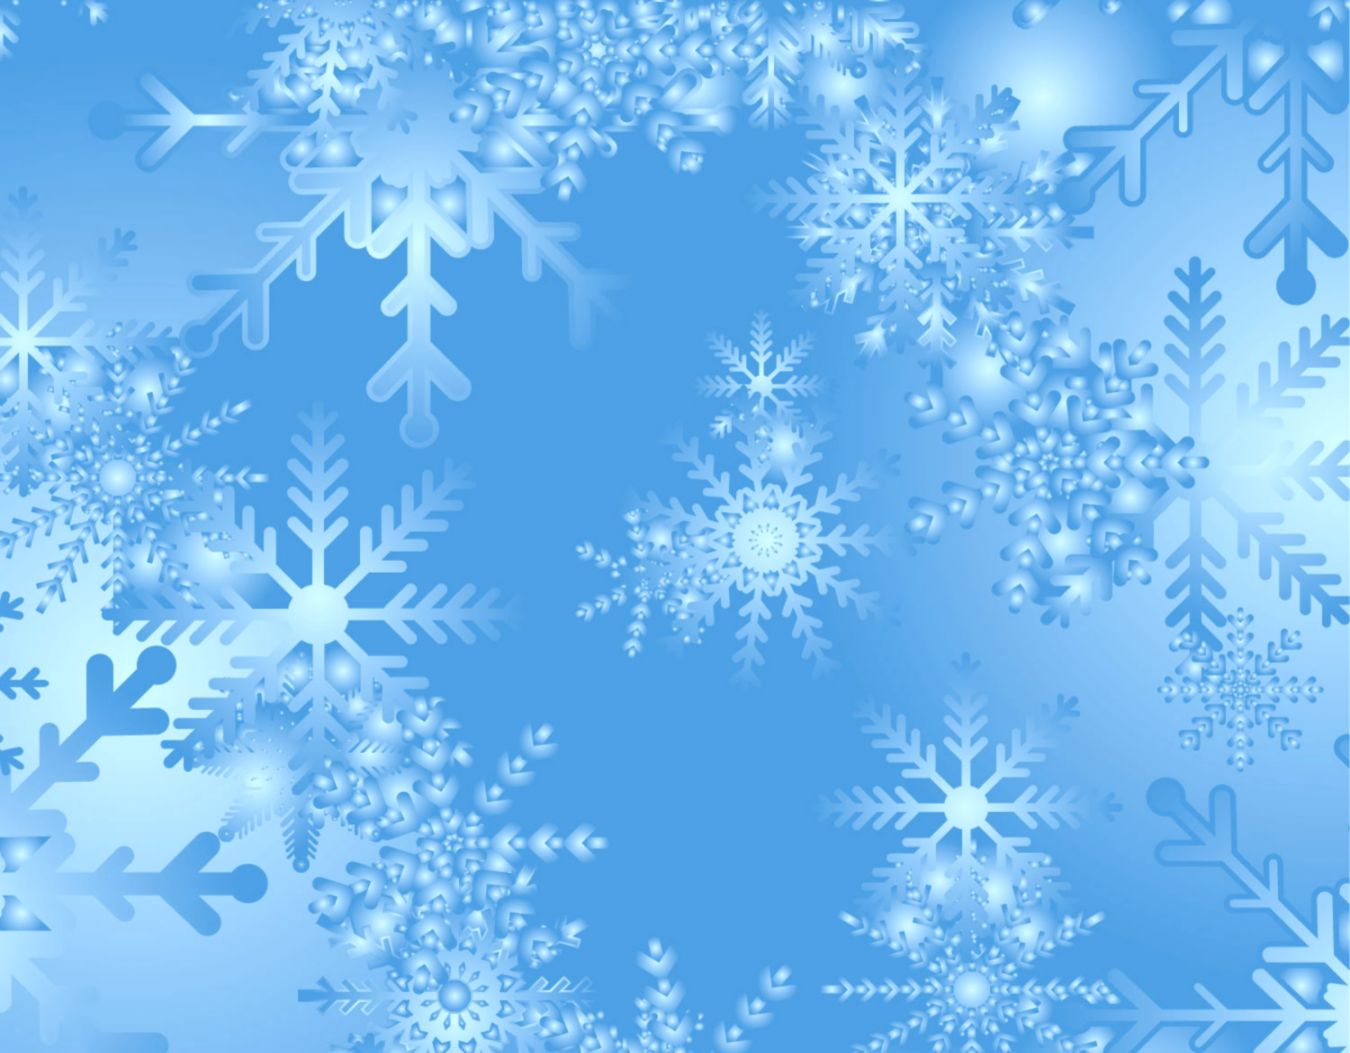 Blue Background For Christmas Moment Wallpaper | Wallpapers